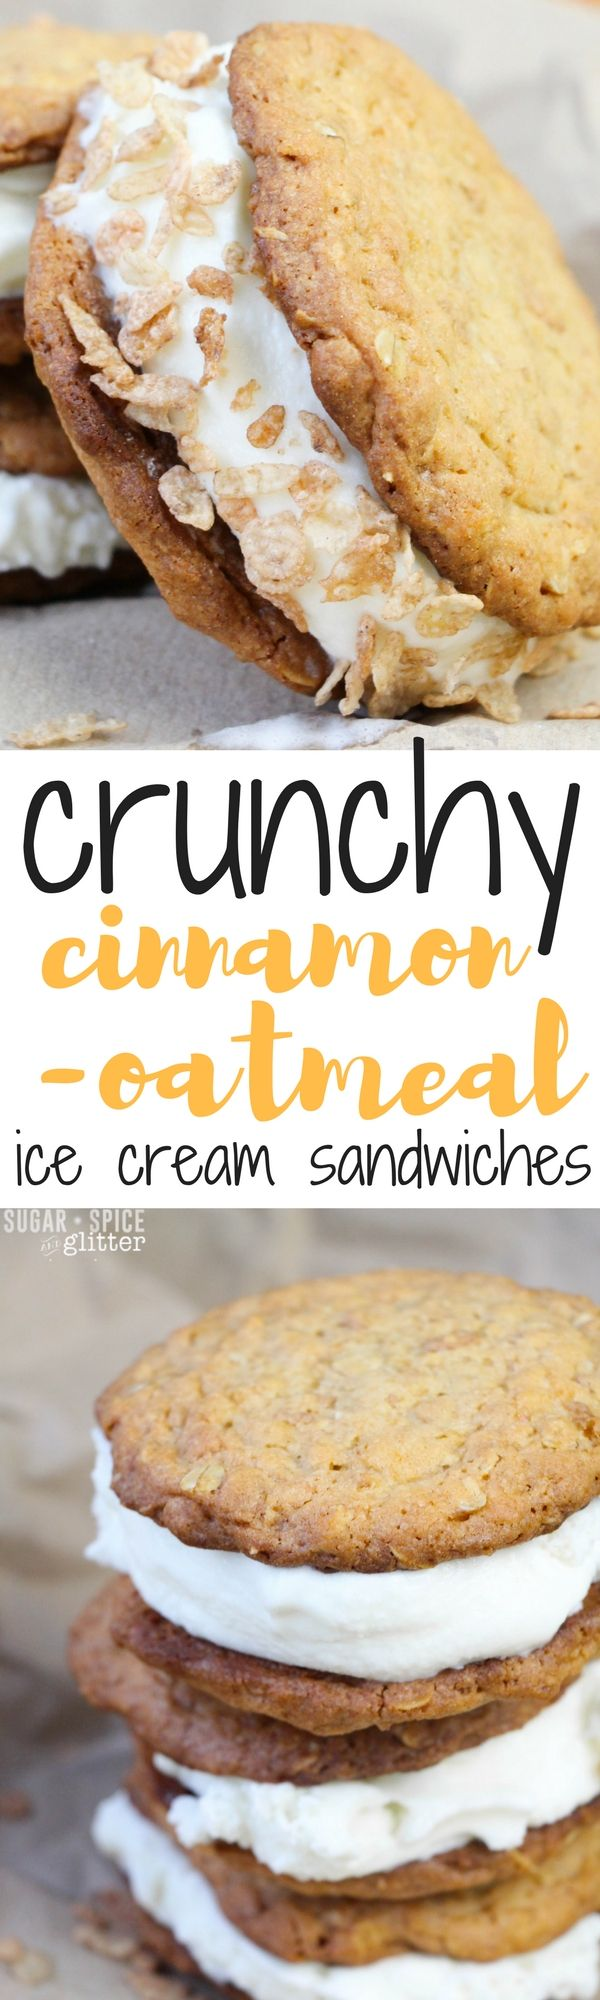 The perfect, crispy oatmeal cinnamon cookies with soft vanilla ice cream filling, these homemade ice cream sandwiches are the perfect summer dessert #